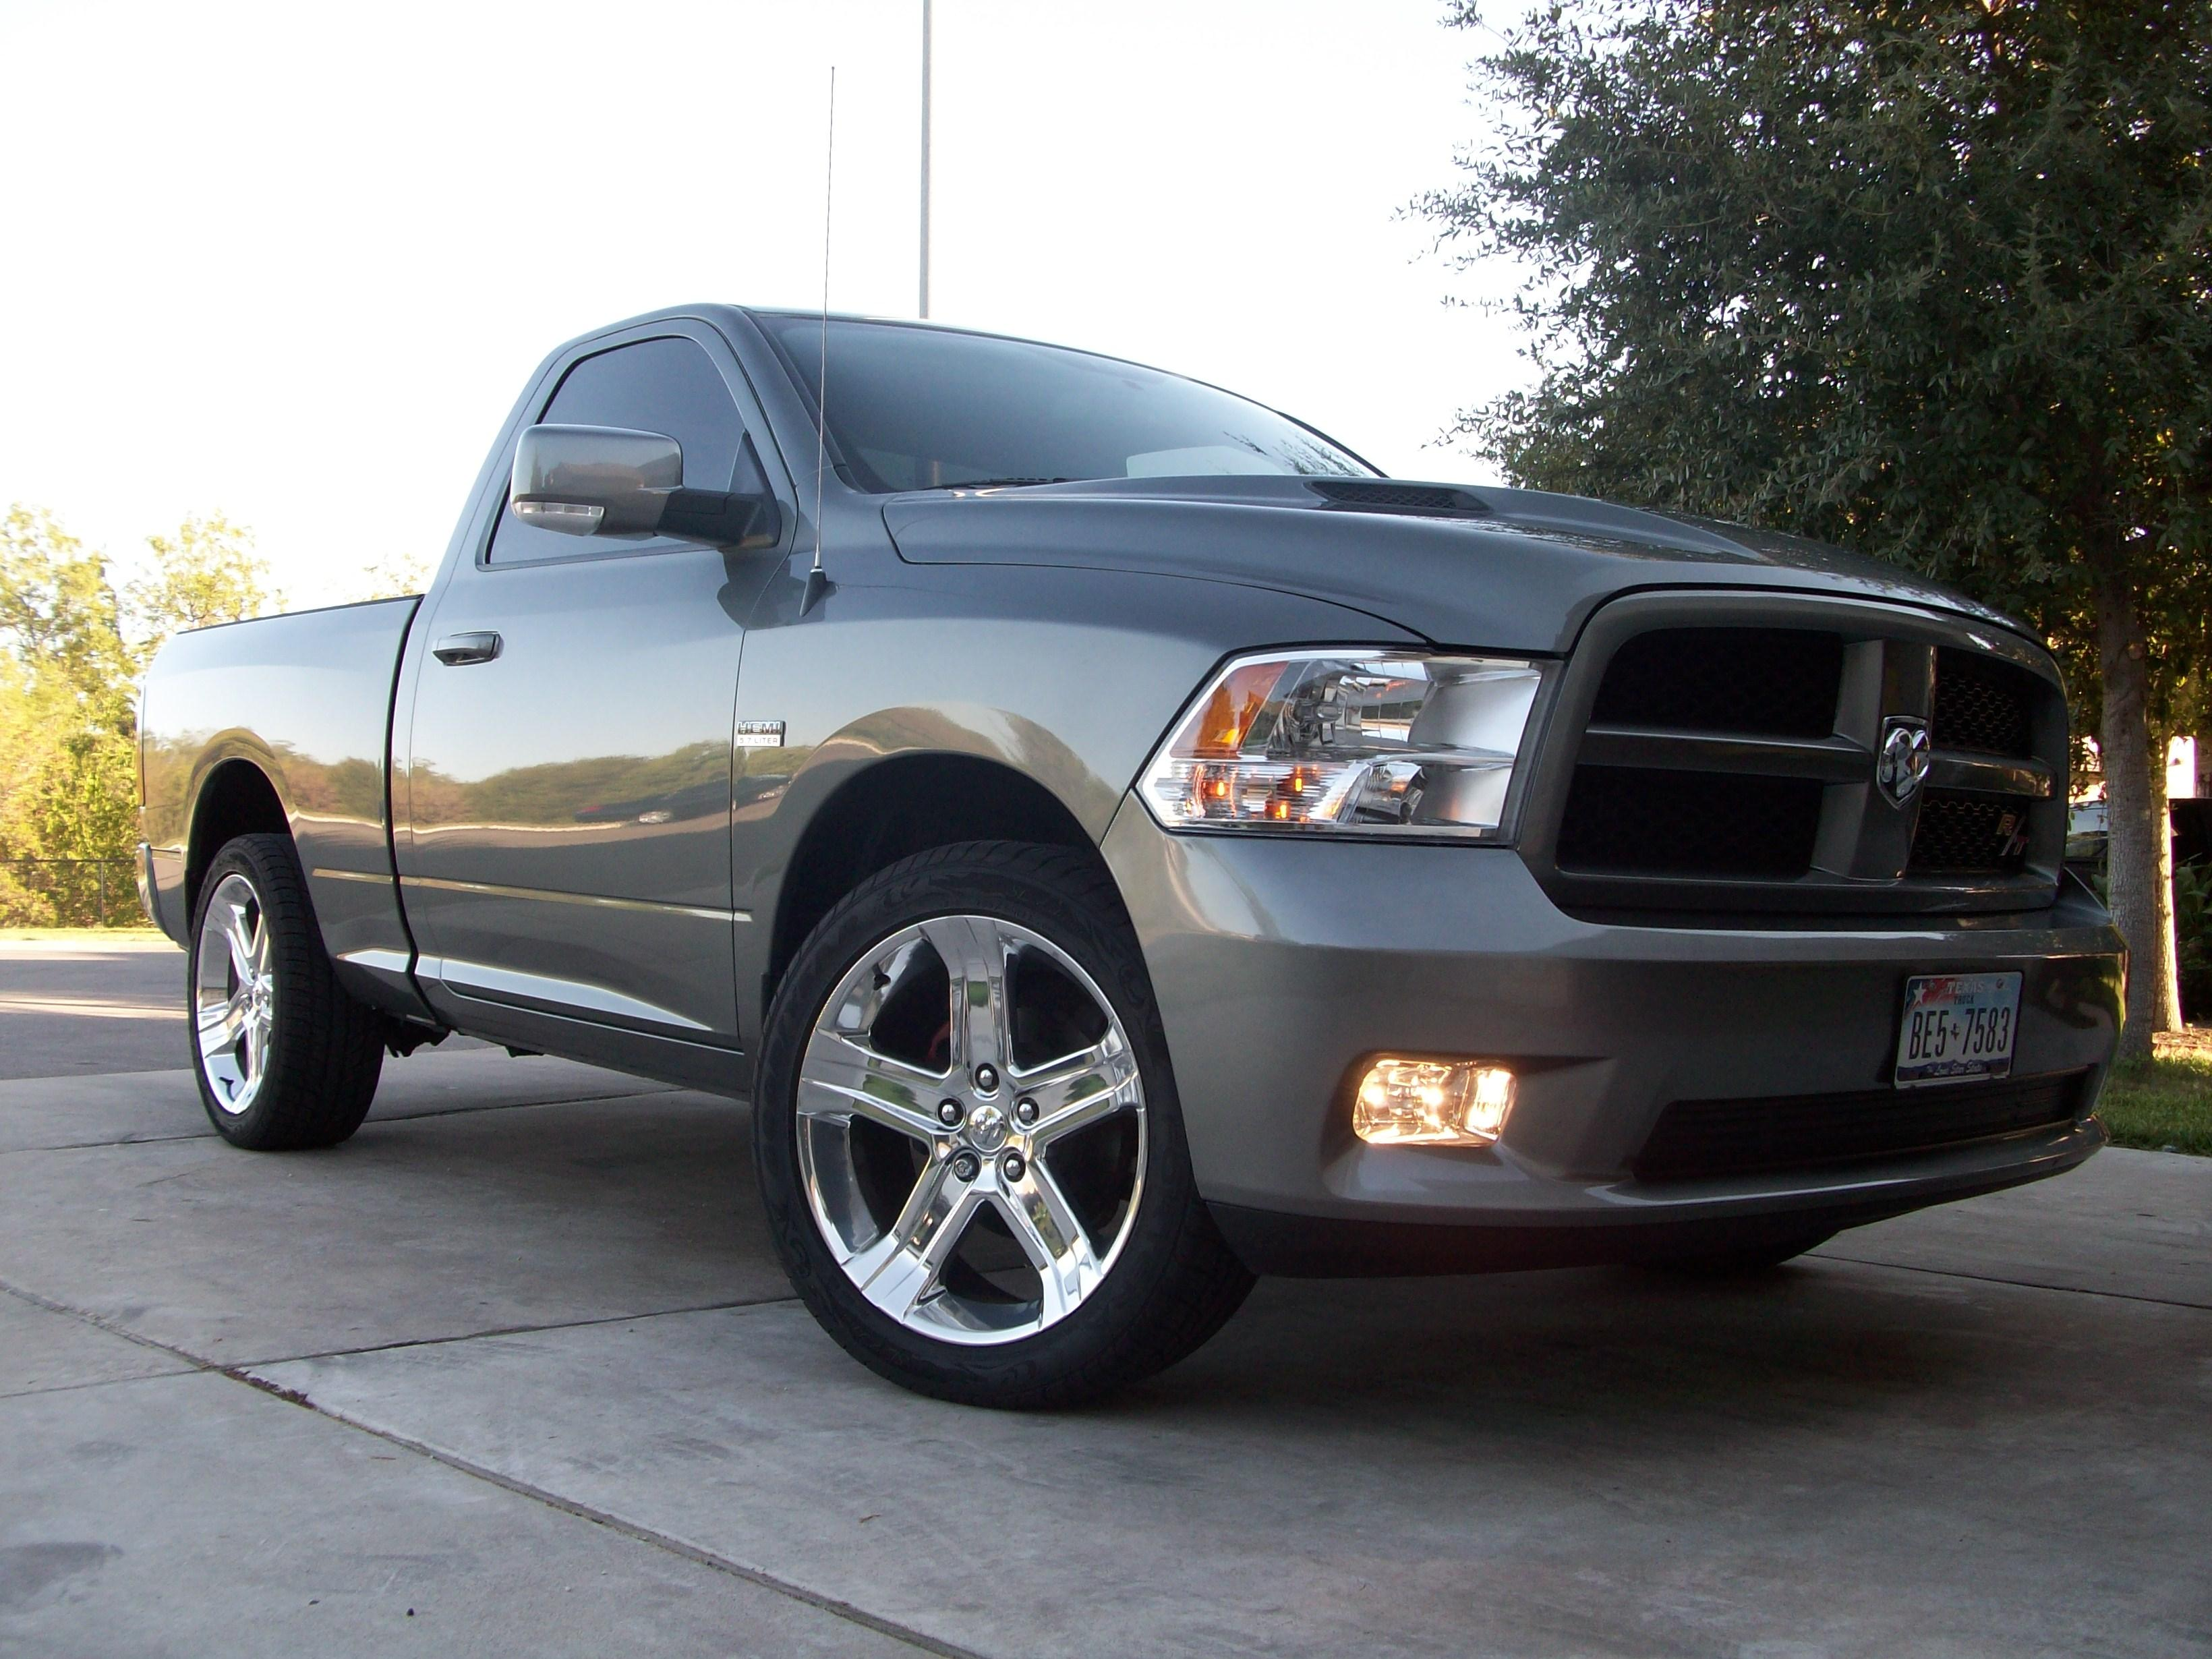 2011ramrt 2011 dodge ram 1500 regular cab specs photos modification info at cardomain. Black Bedroom Furniture Sets. Home Design Ideas